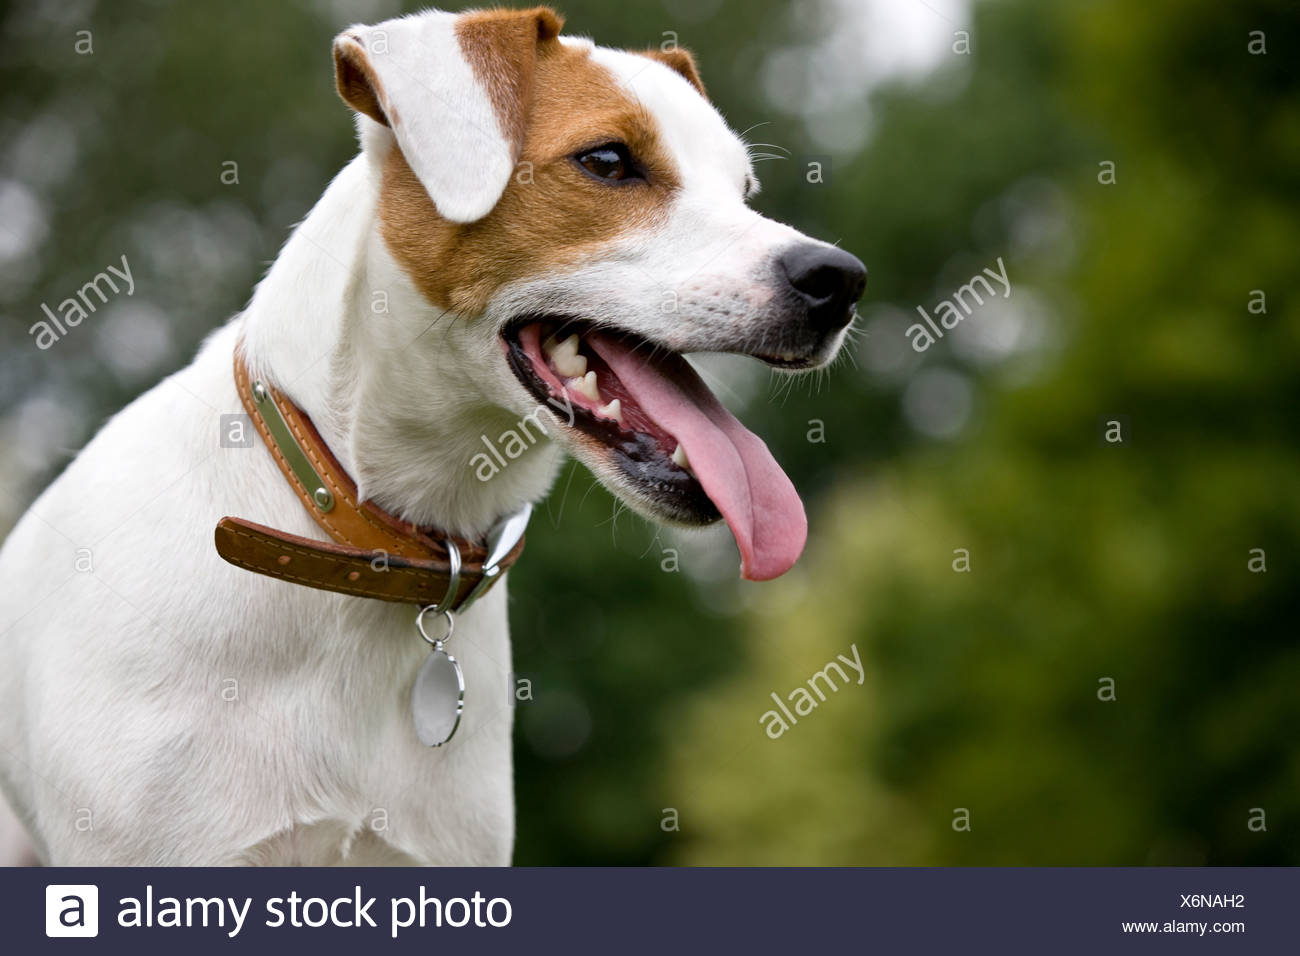 Portrait of a parsons terrier dog - Stock Image